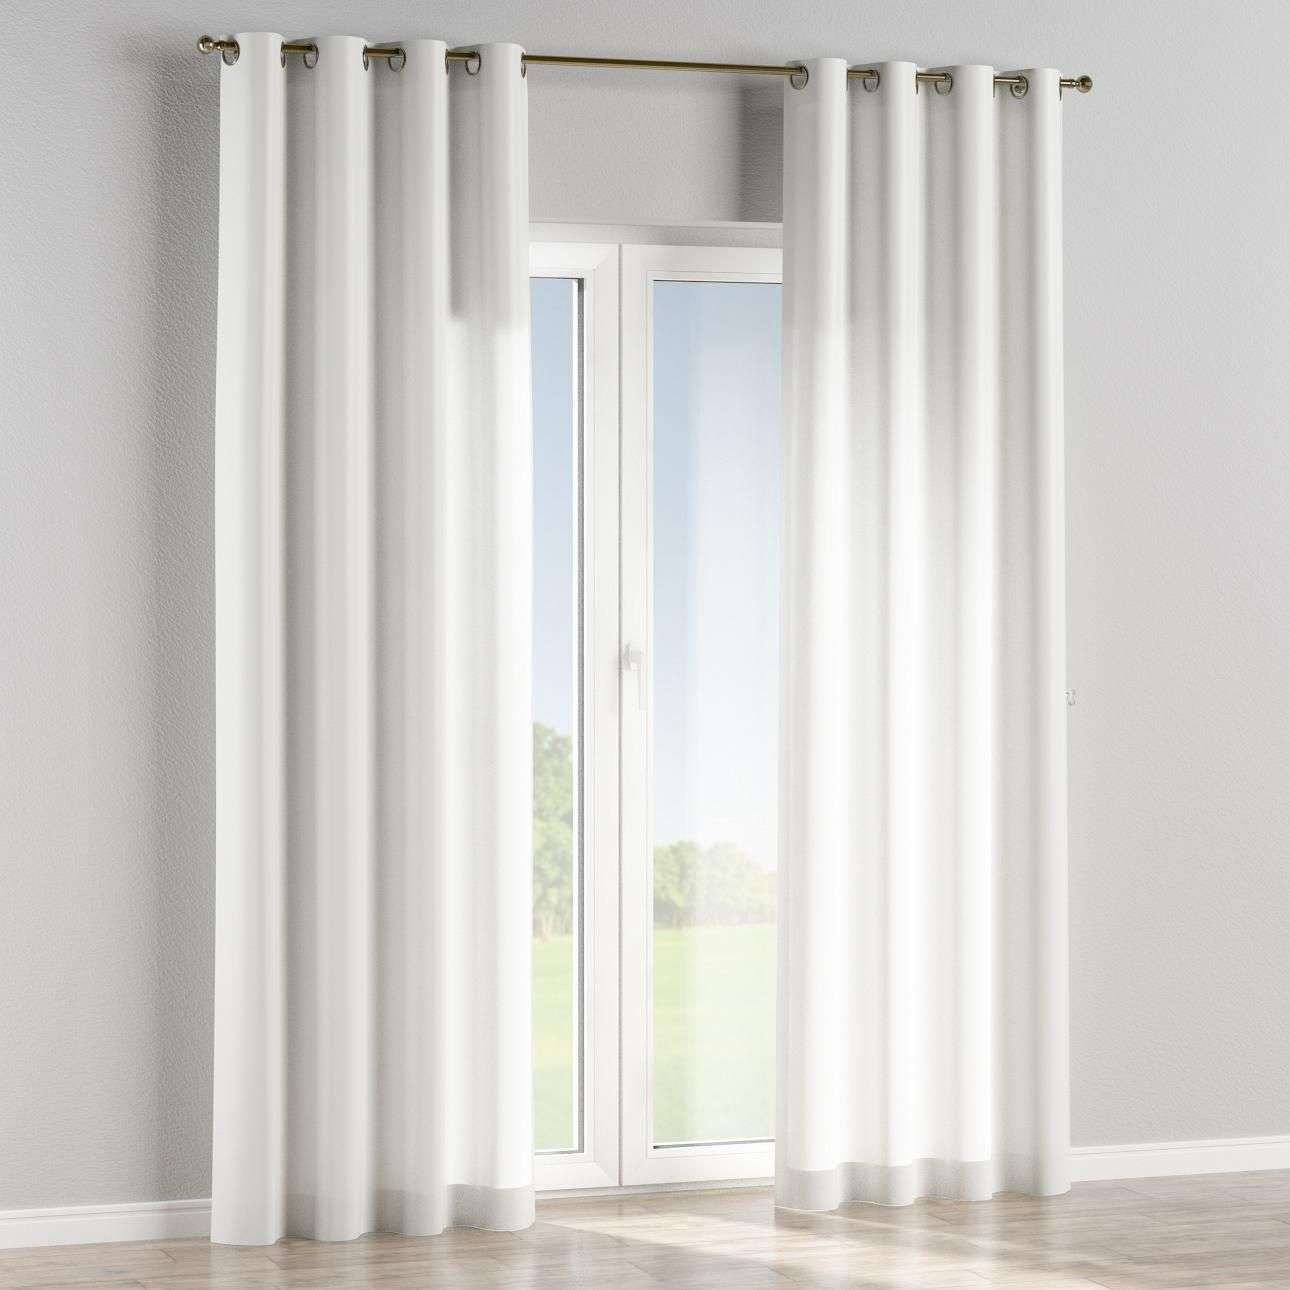 Eyelet lined curtains in collection Norge, fabric: 150-09